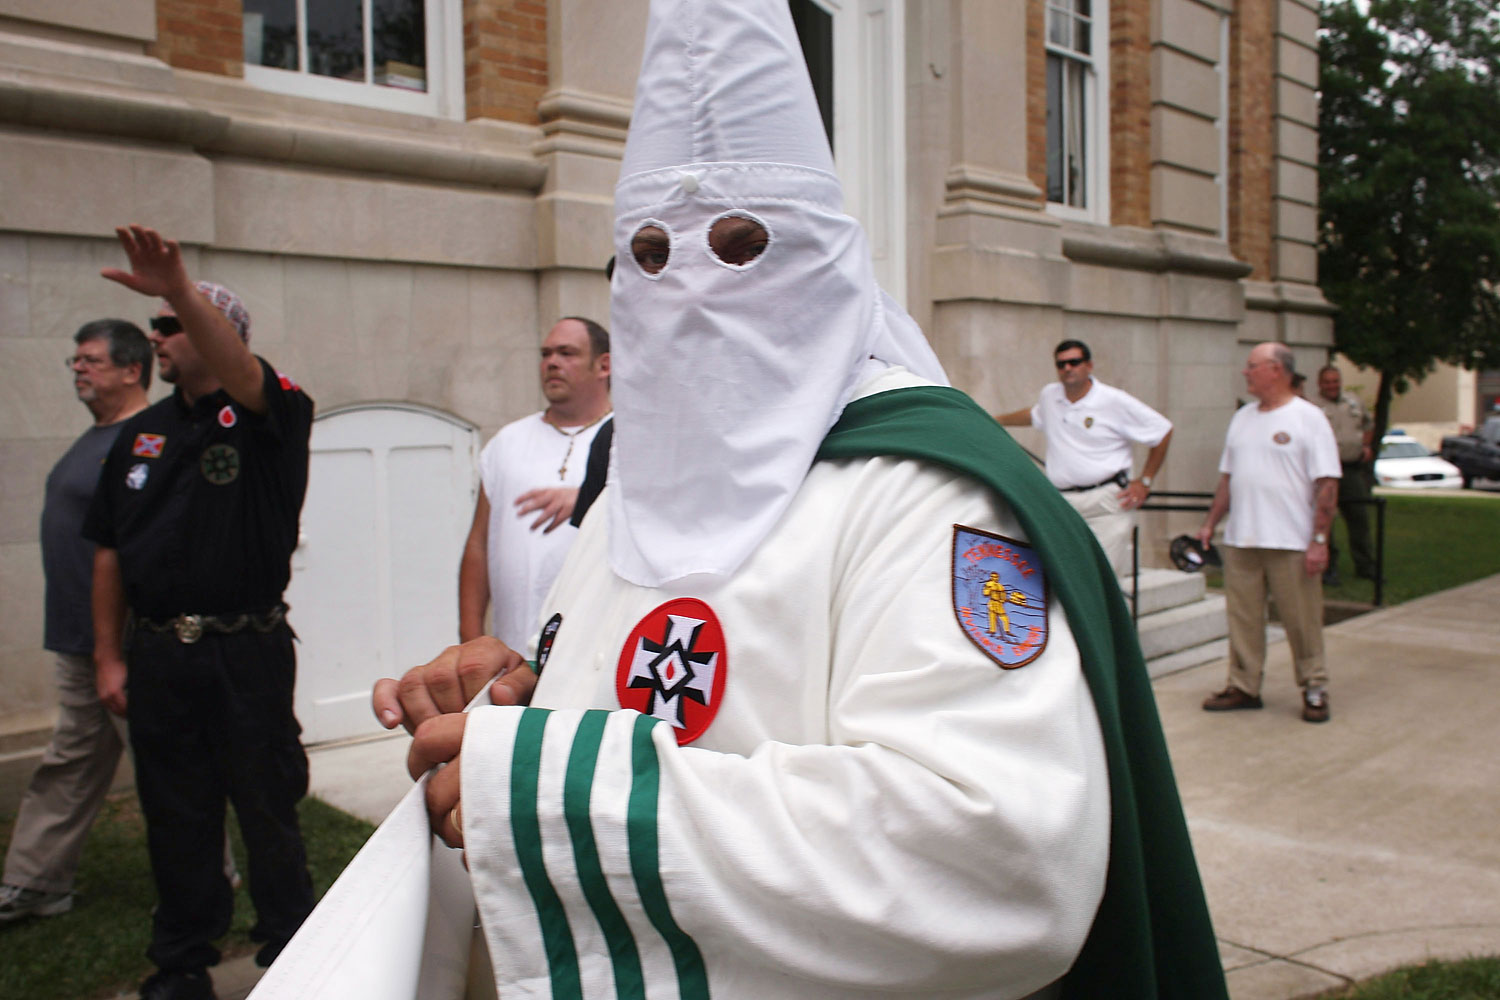 Members of the Fraternal White Knights of the Ku Klux Clan participate in the 11th Annual Nathan Bedford Forrest Birthday march July 11, 2009 in Pulaski, Tennessee.